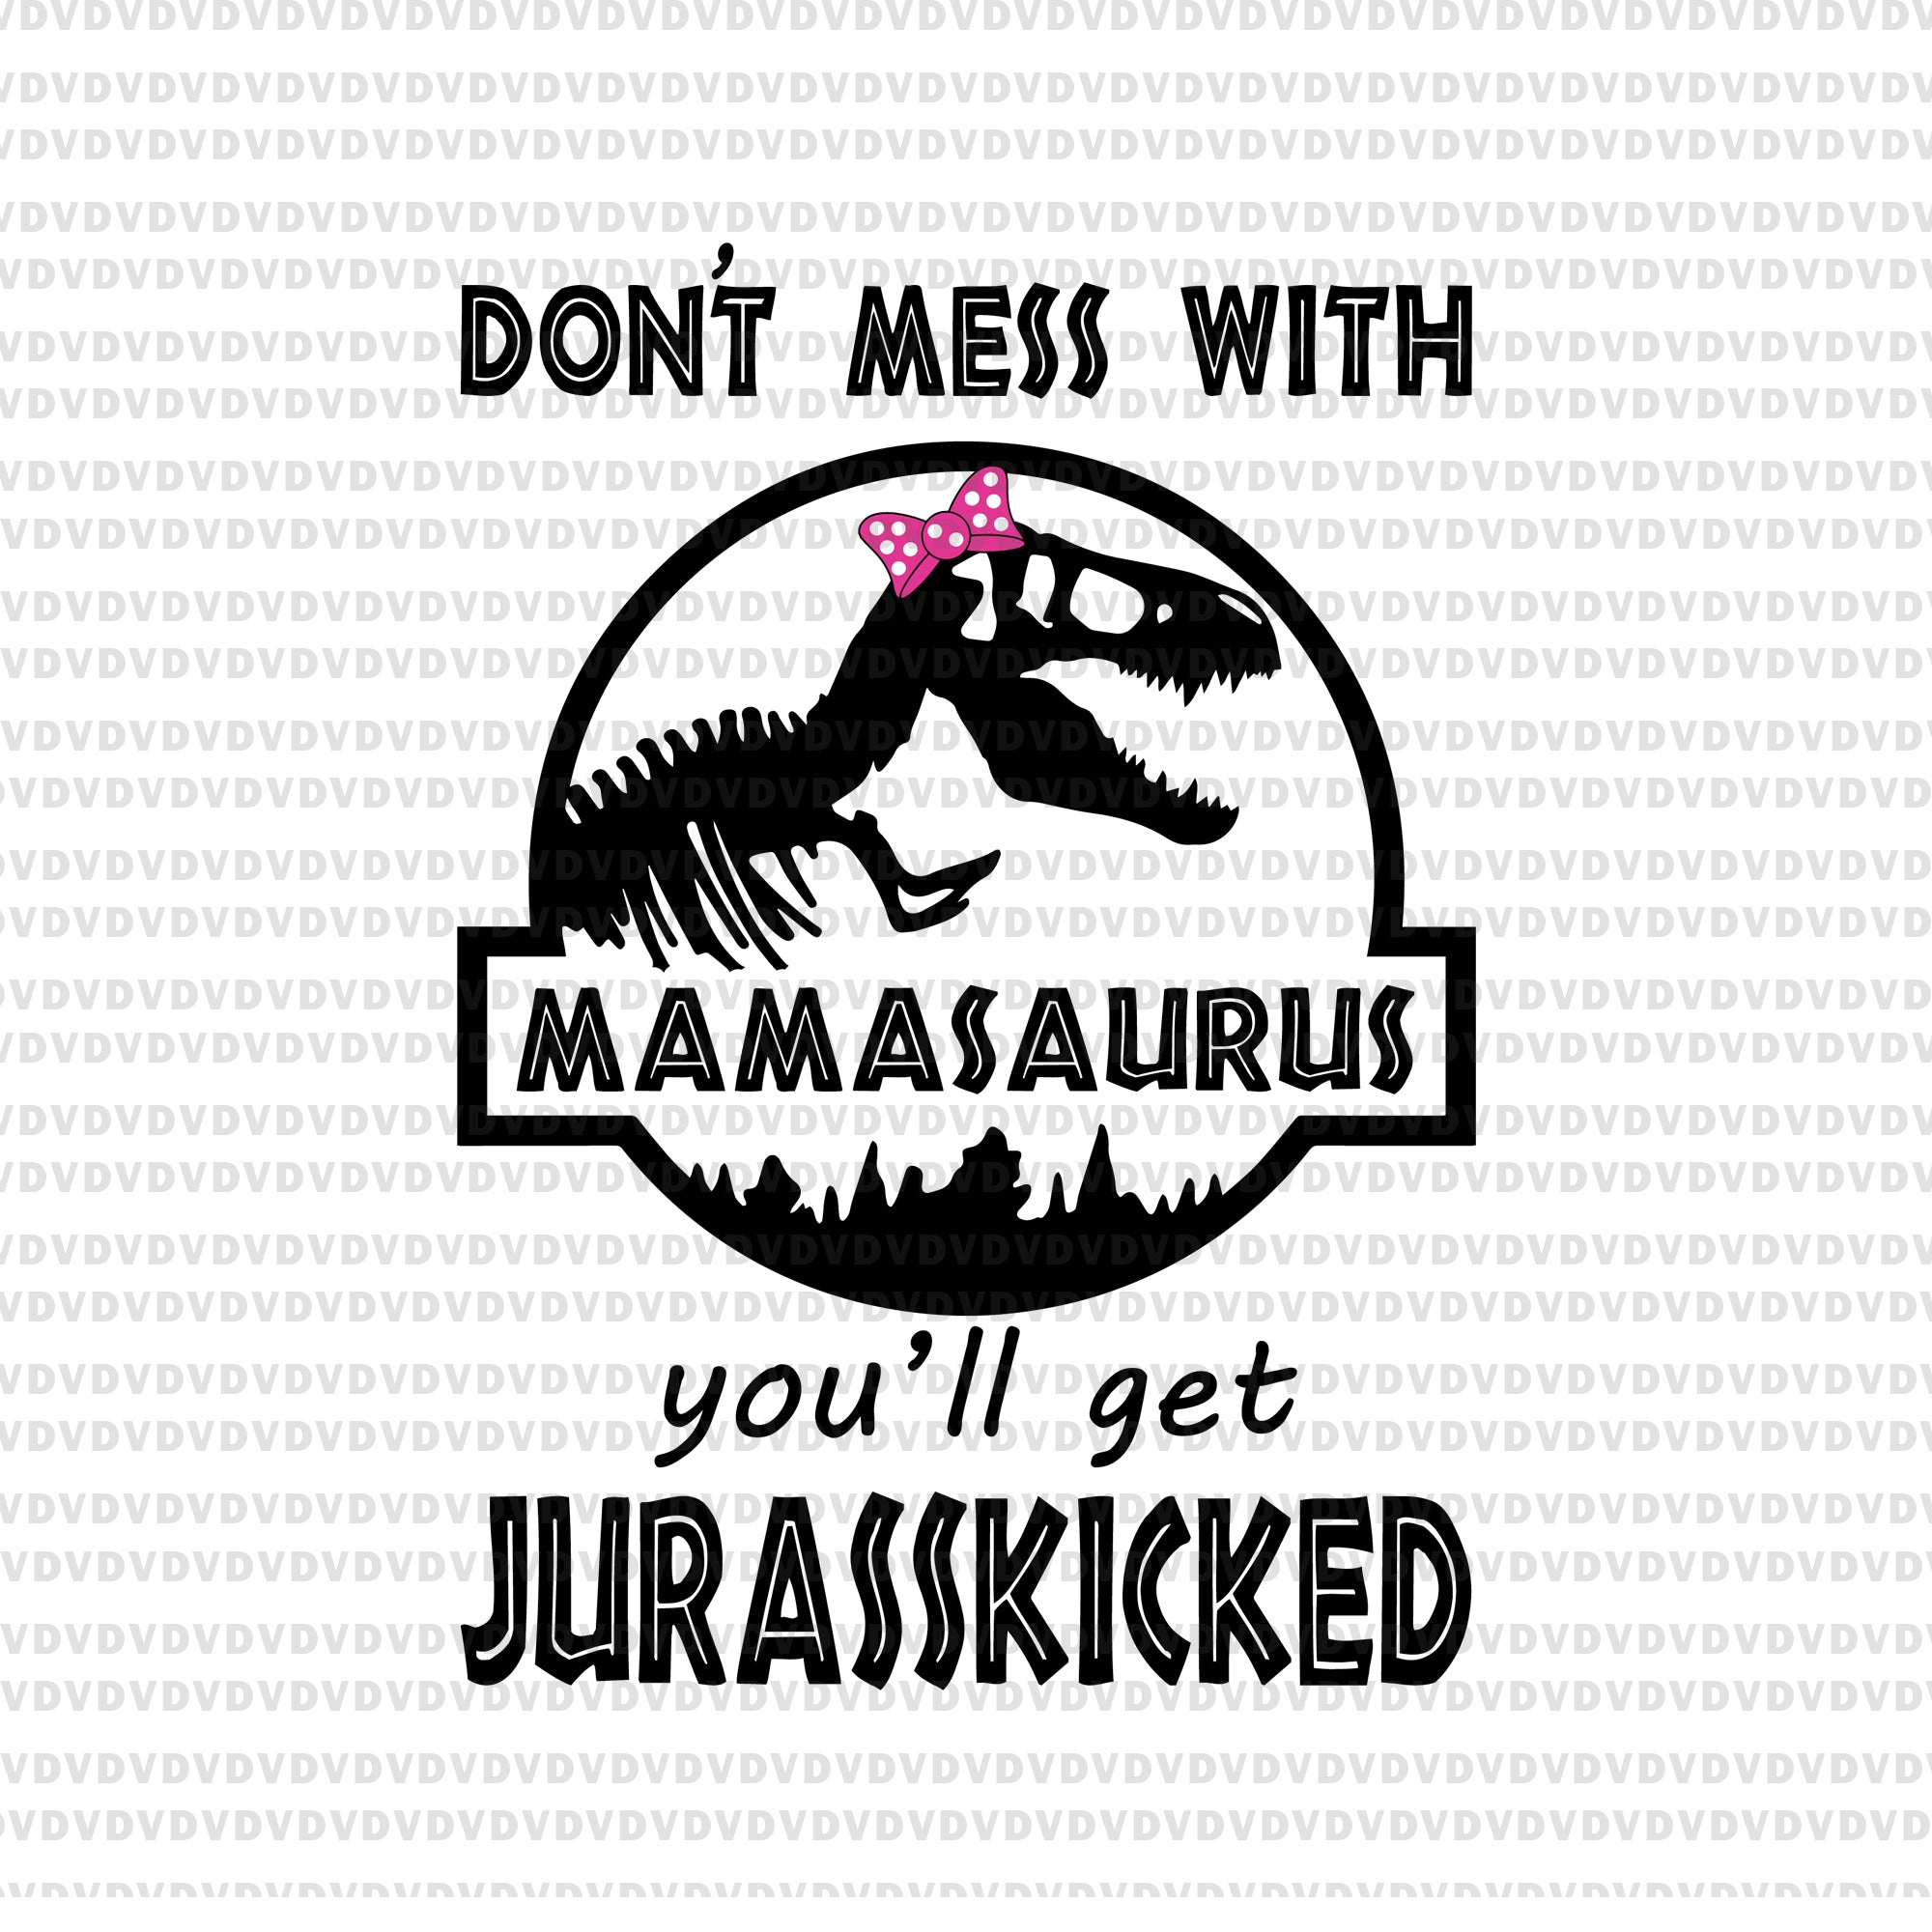 Don't mess with mamasaurus you'll get jurasskicked svg, mamasaurus svg, mother's day svg, mother day, mom svg, png, eps, dxf file